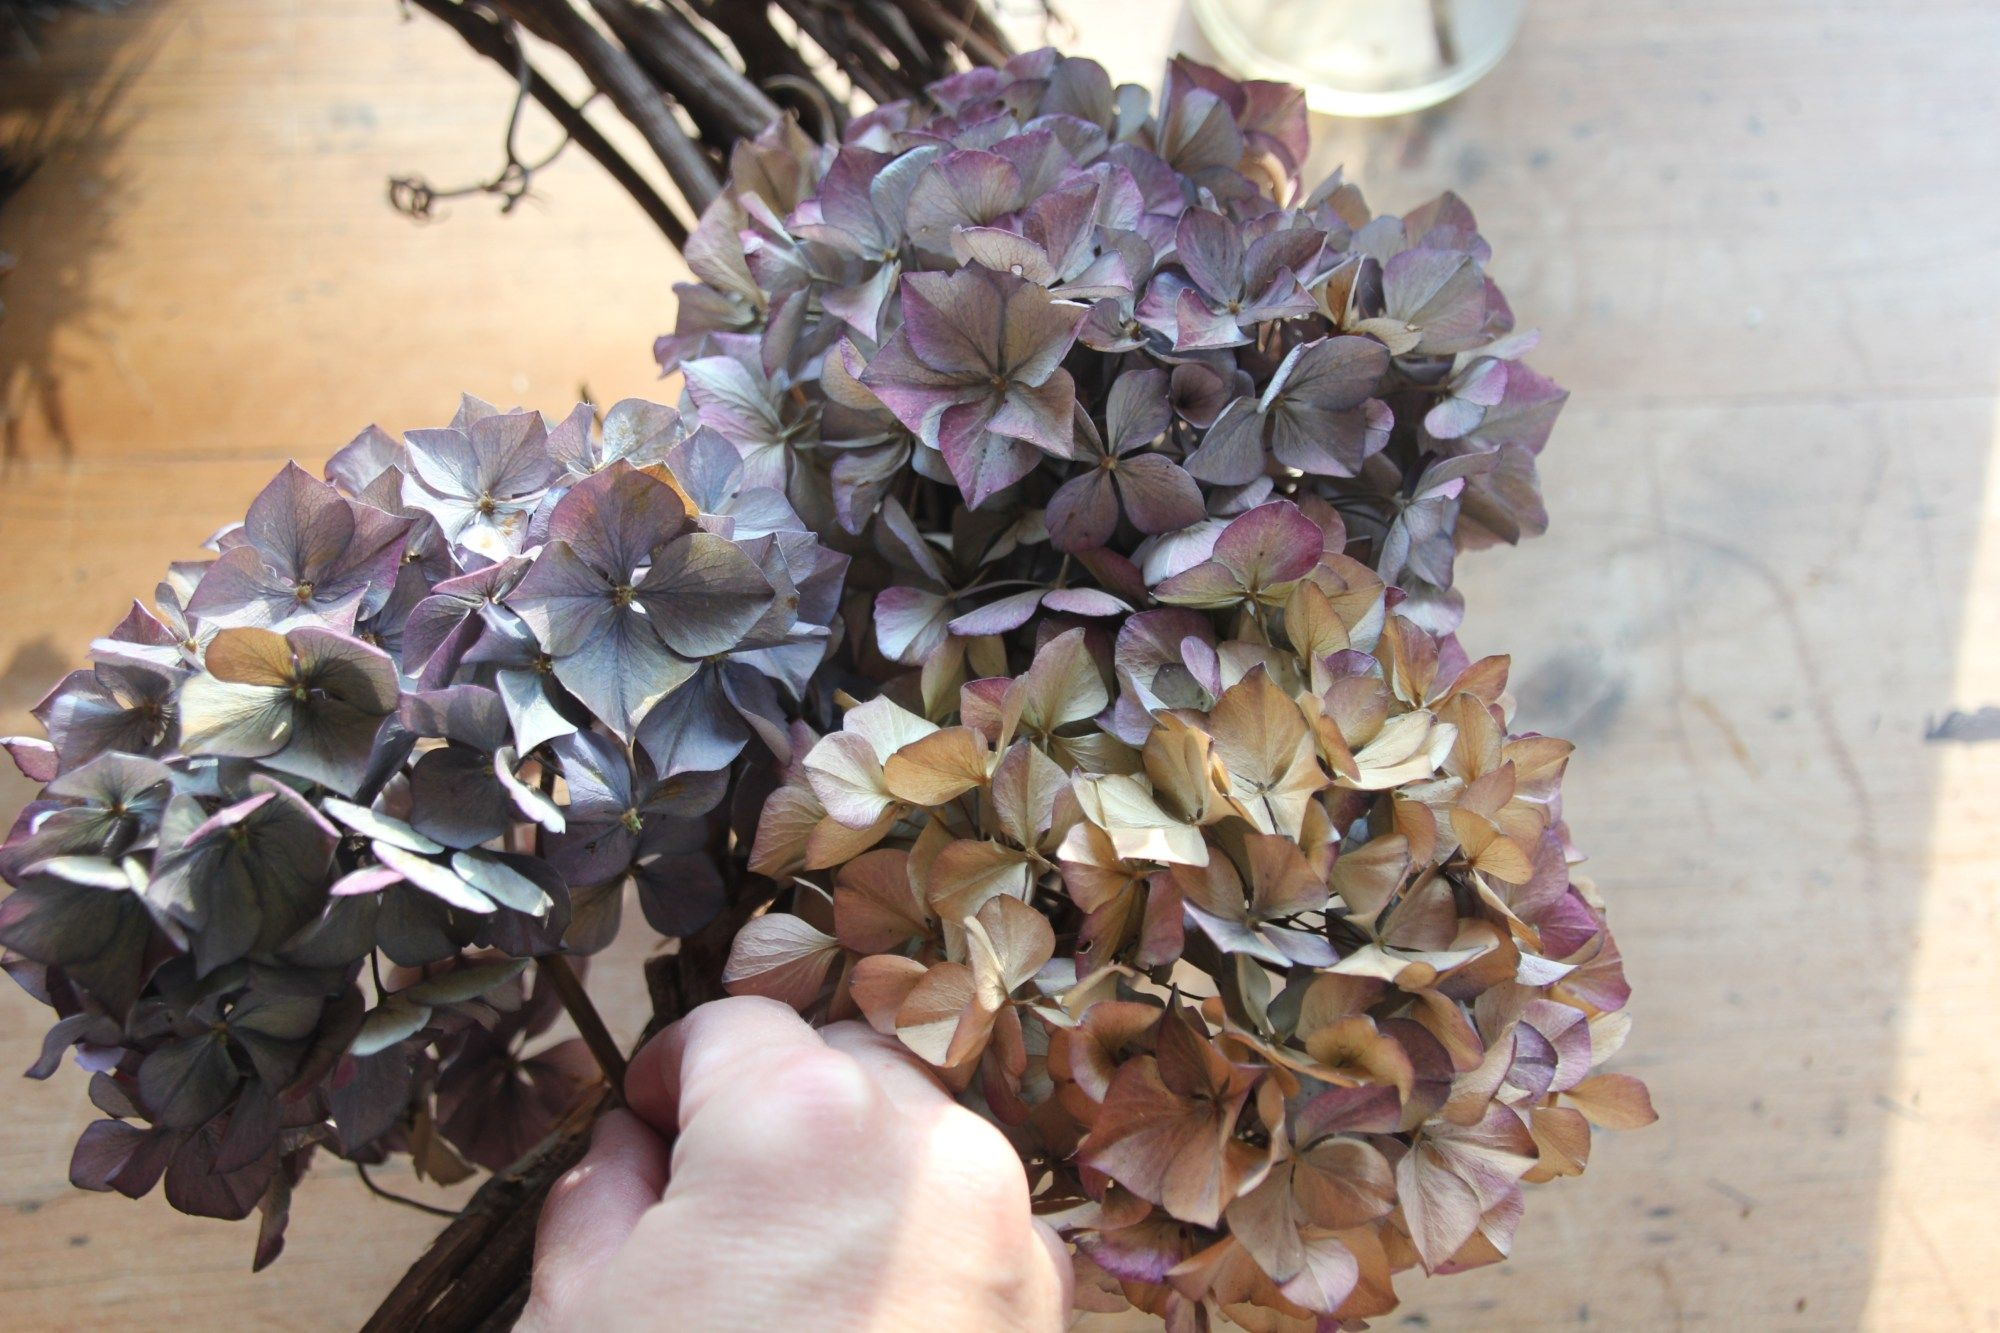 How To Dry Hydrangeas And Make A Dried Hydrangea Wreath A Country Girl S Life In 2020 Dried Hydrangeas Dried Flowers Dried Flowers Diy